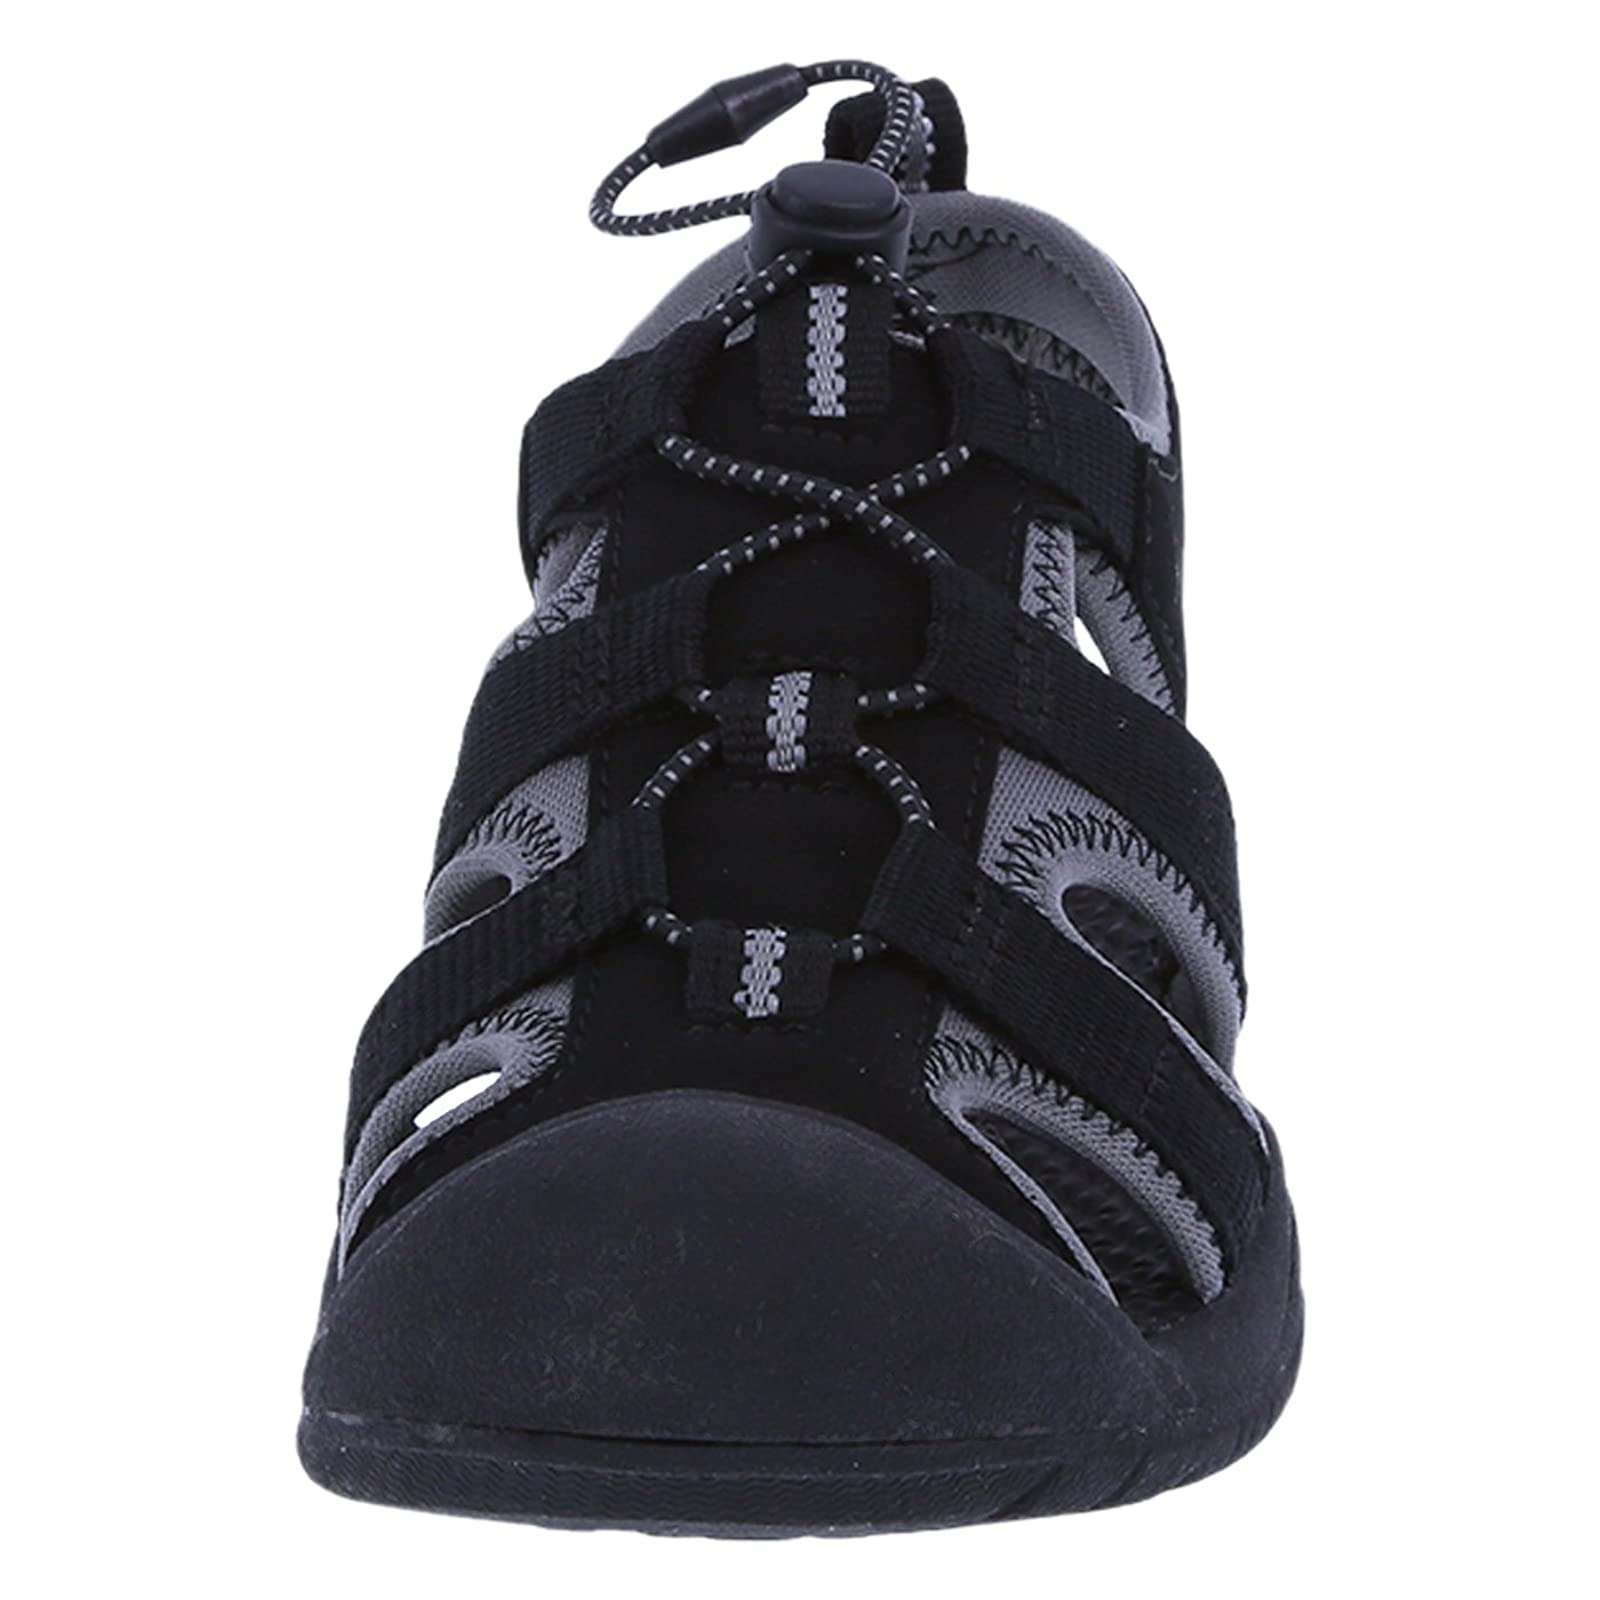 Rugged Outback Boys' Bumptoe Sandal One Size - 3